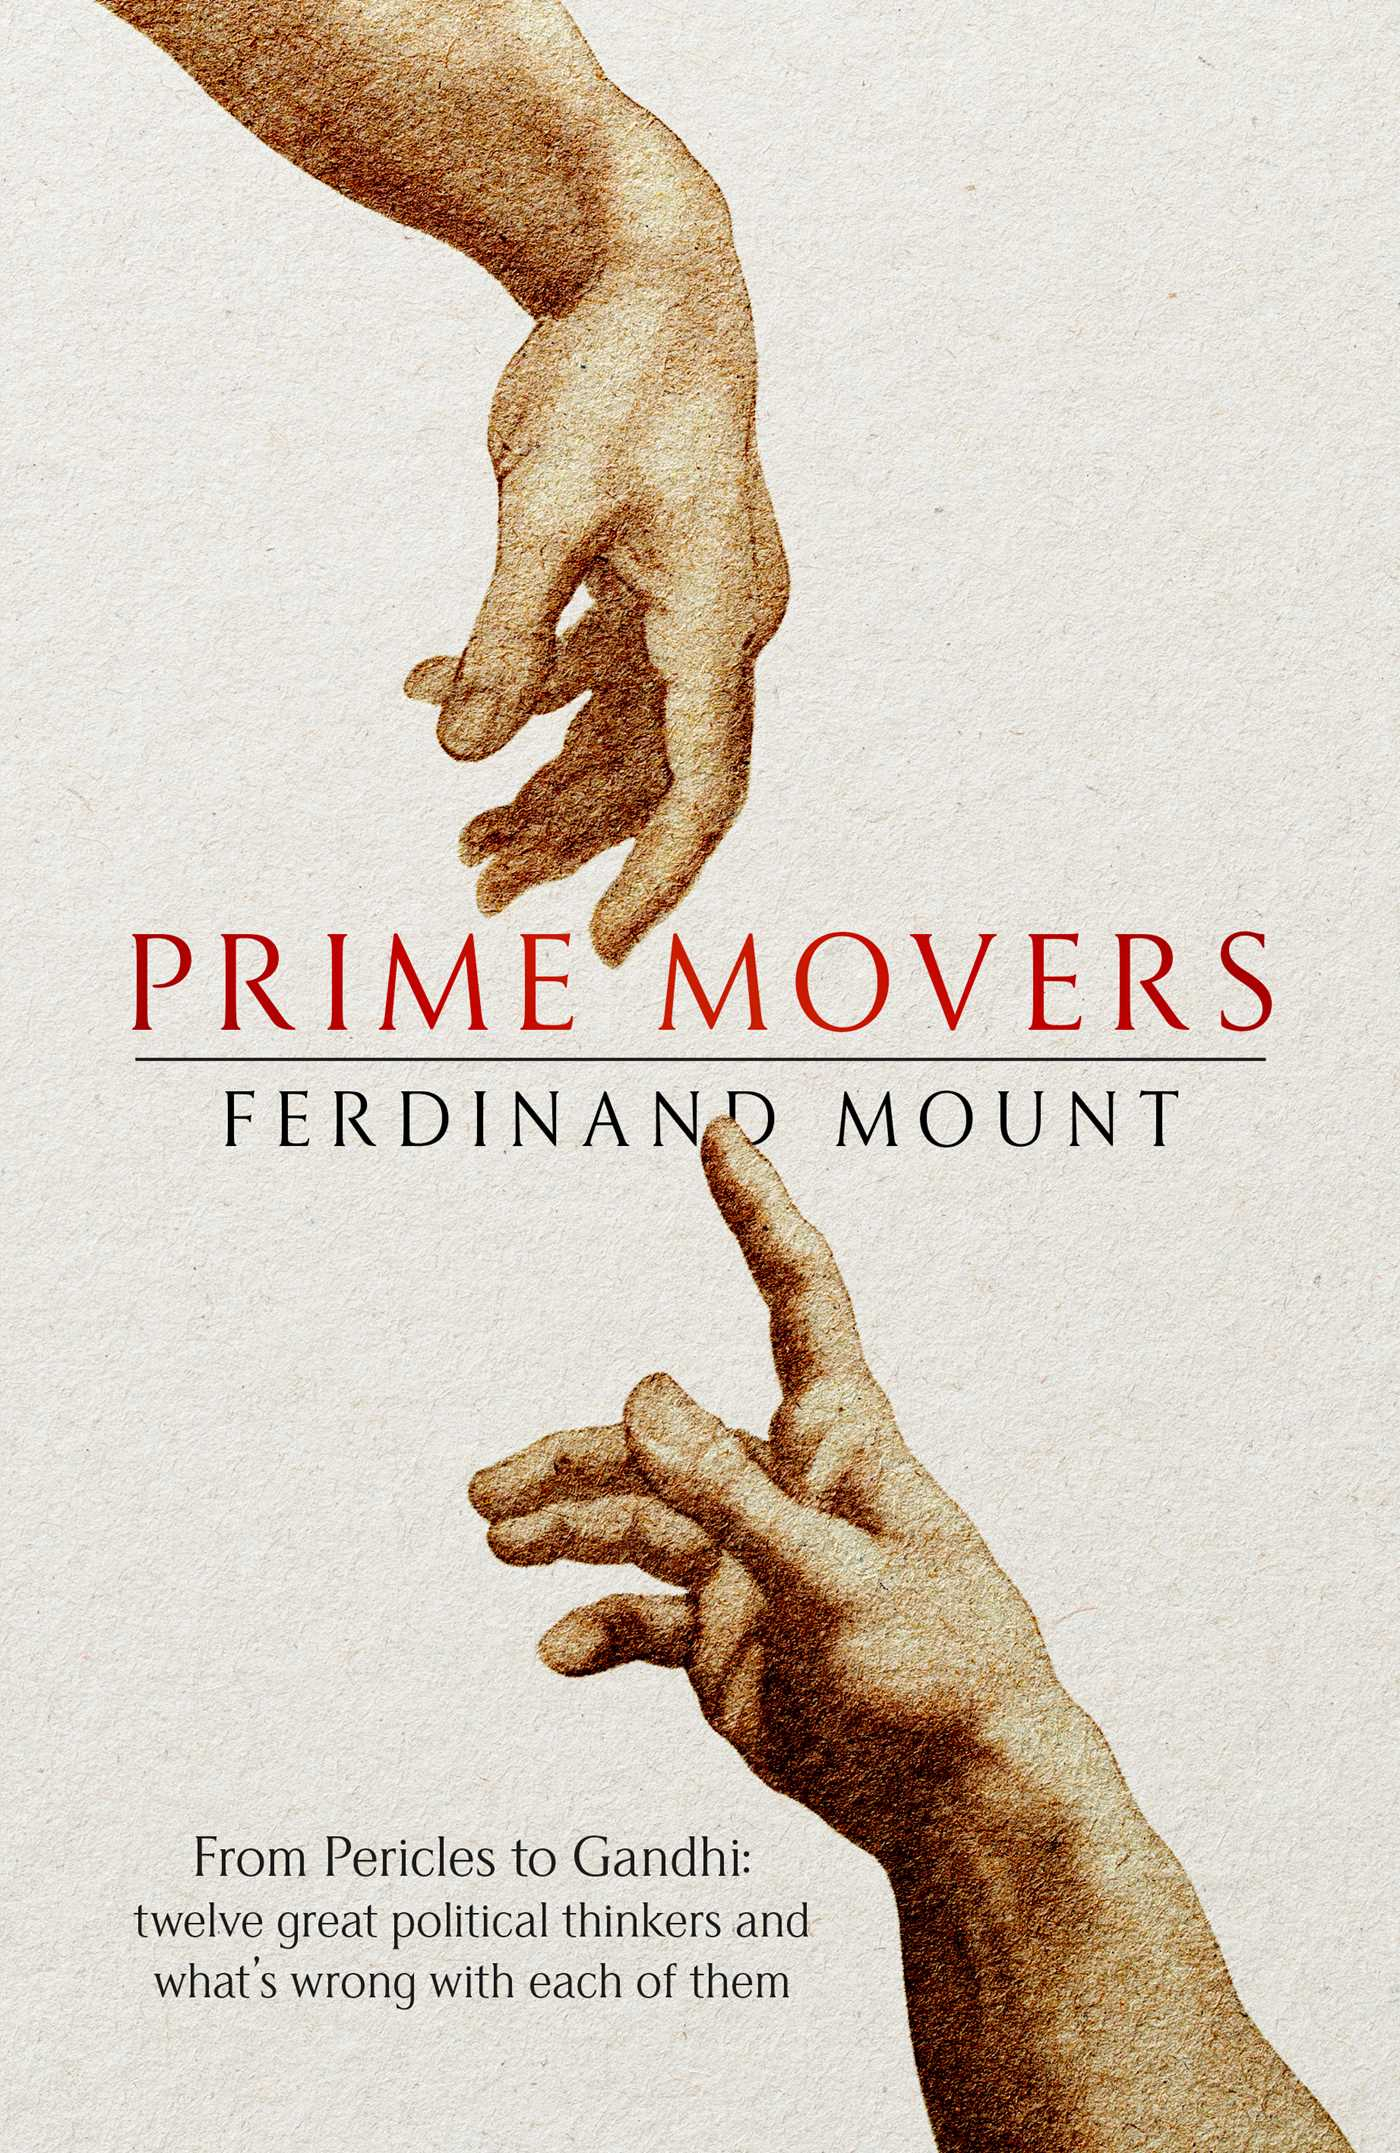 Prime movers 9781471156007 hr